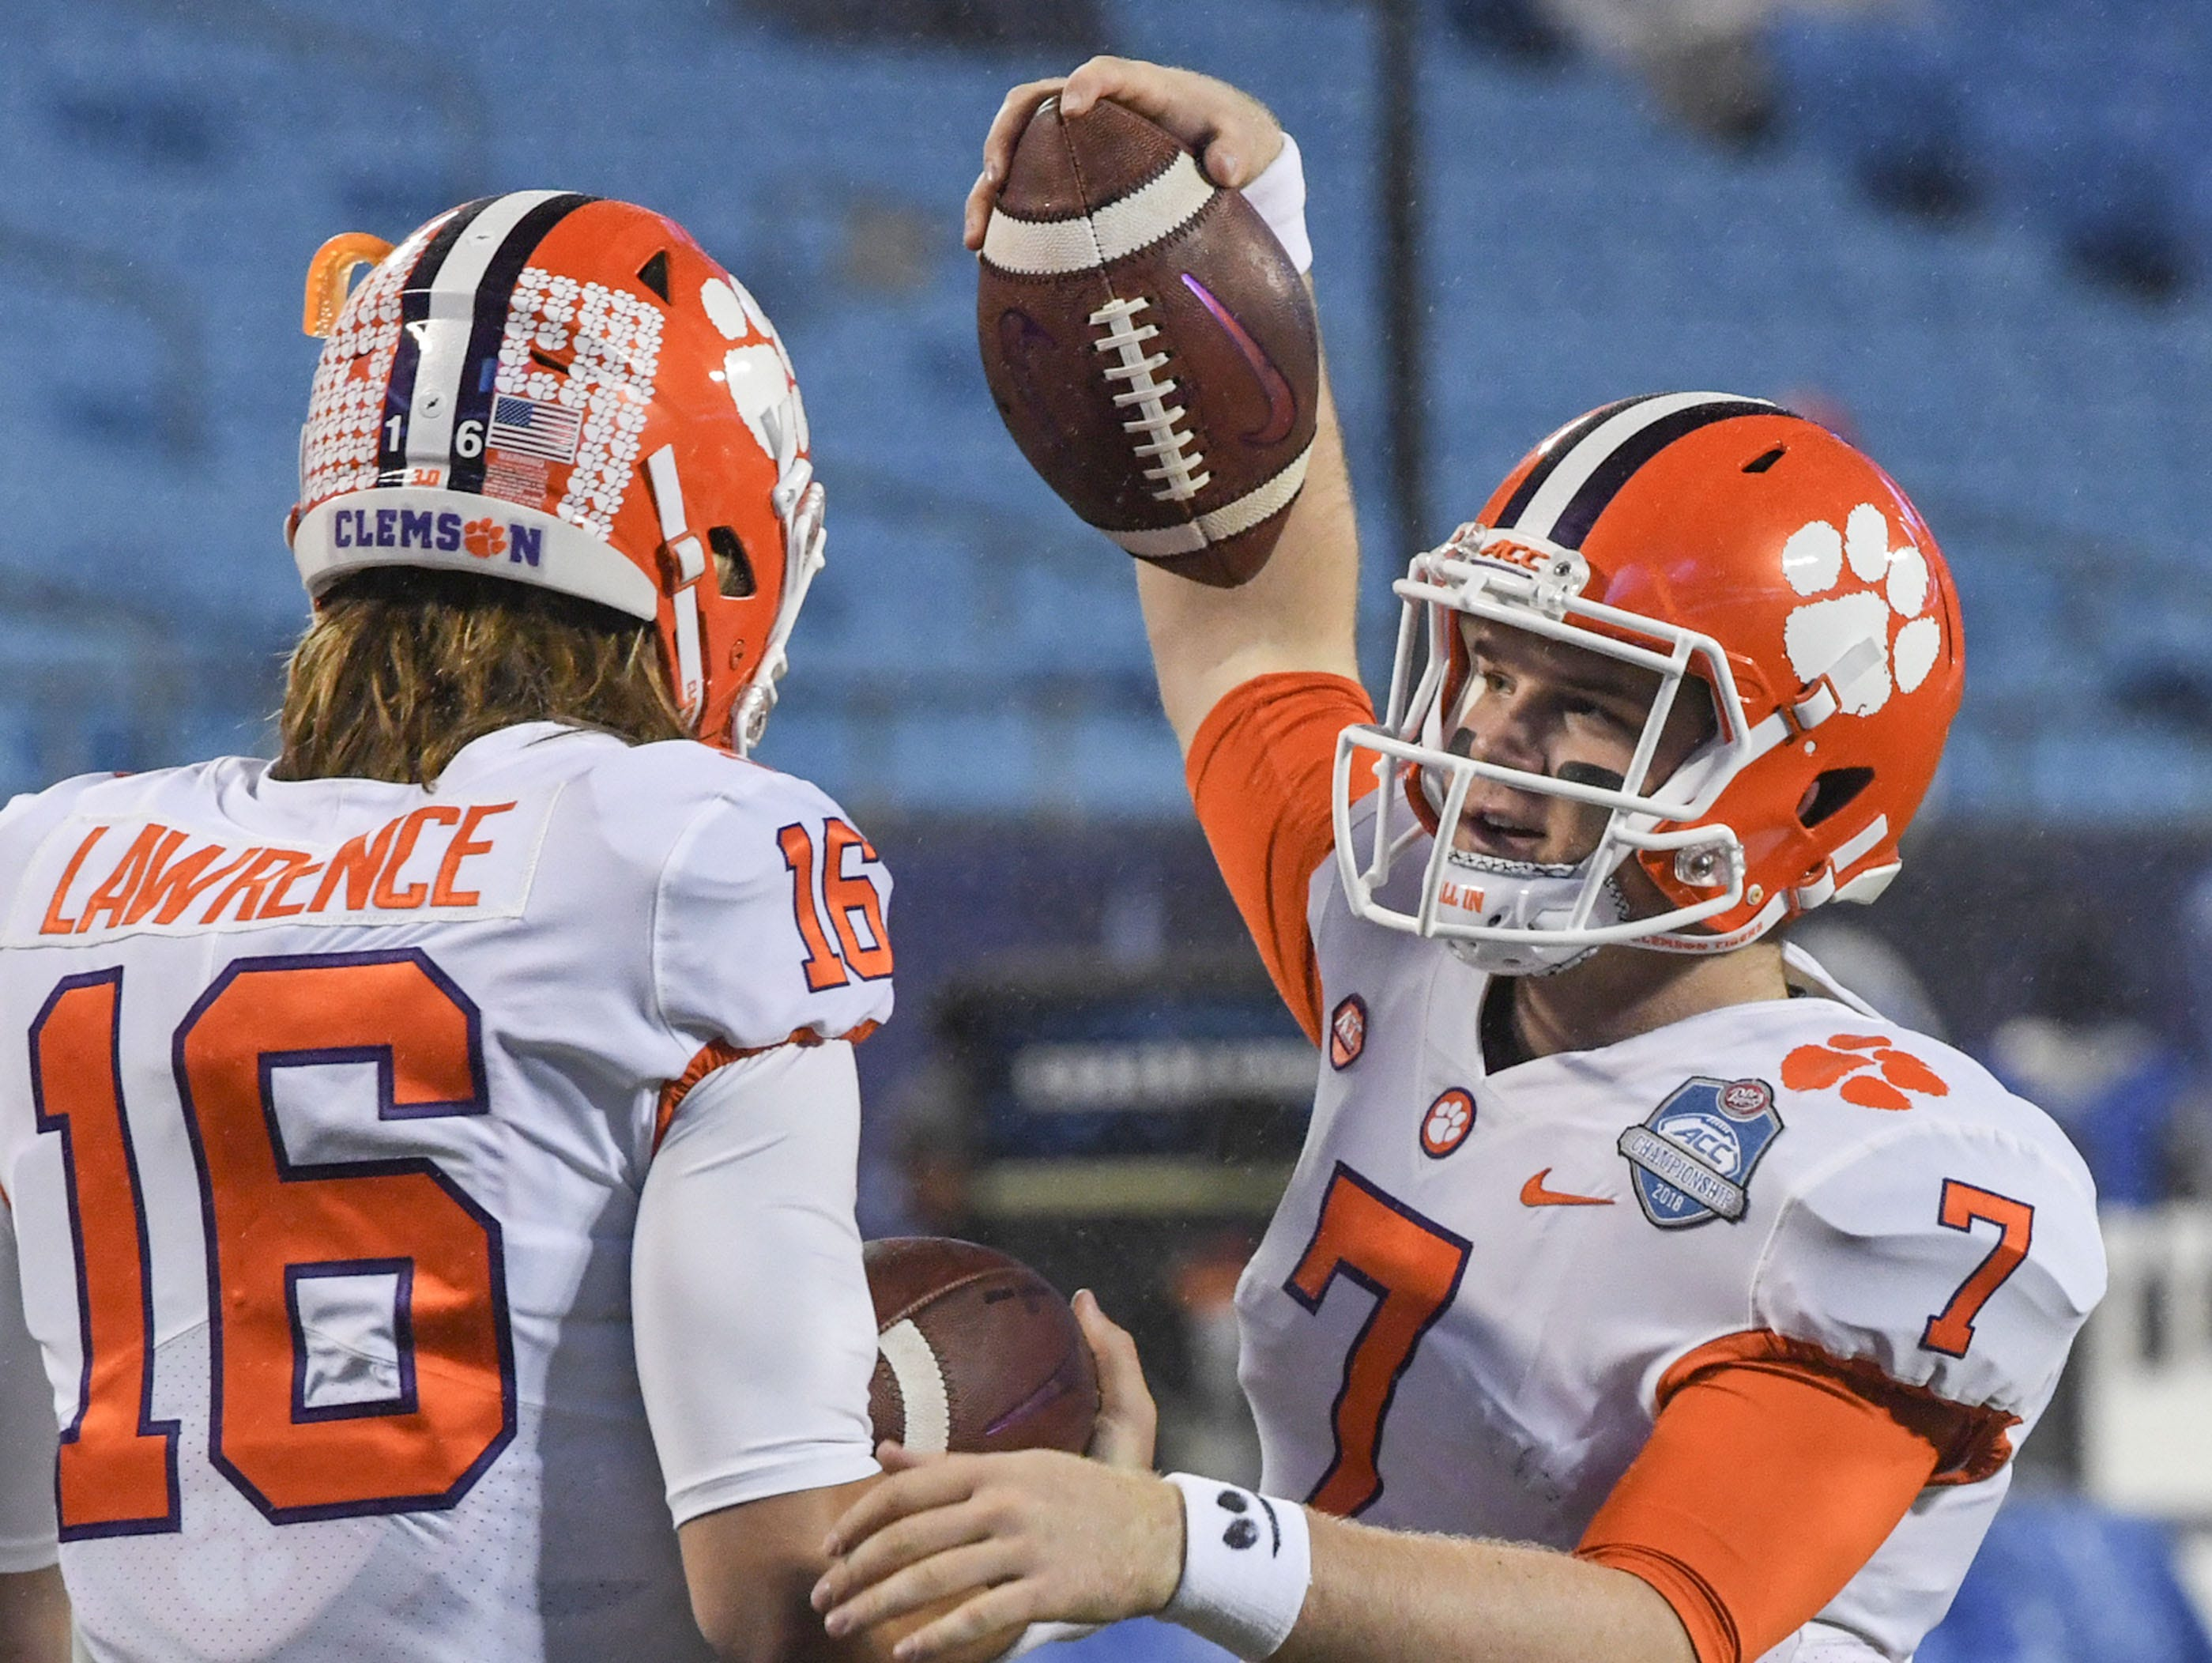 Clemson quarterback Trevor Lawrence (16) and quarterback Chase Brice (7) warm up before the game of the Dr. Pepper ACC football championship at Bank of America Stadium in Charlotte, N.C. on Saturday, December 1, 2018.